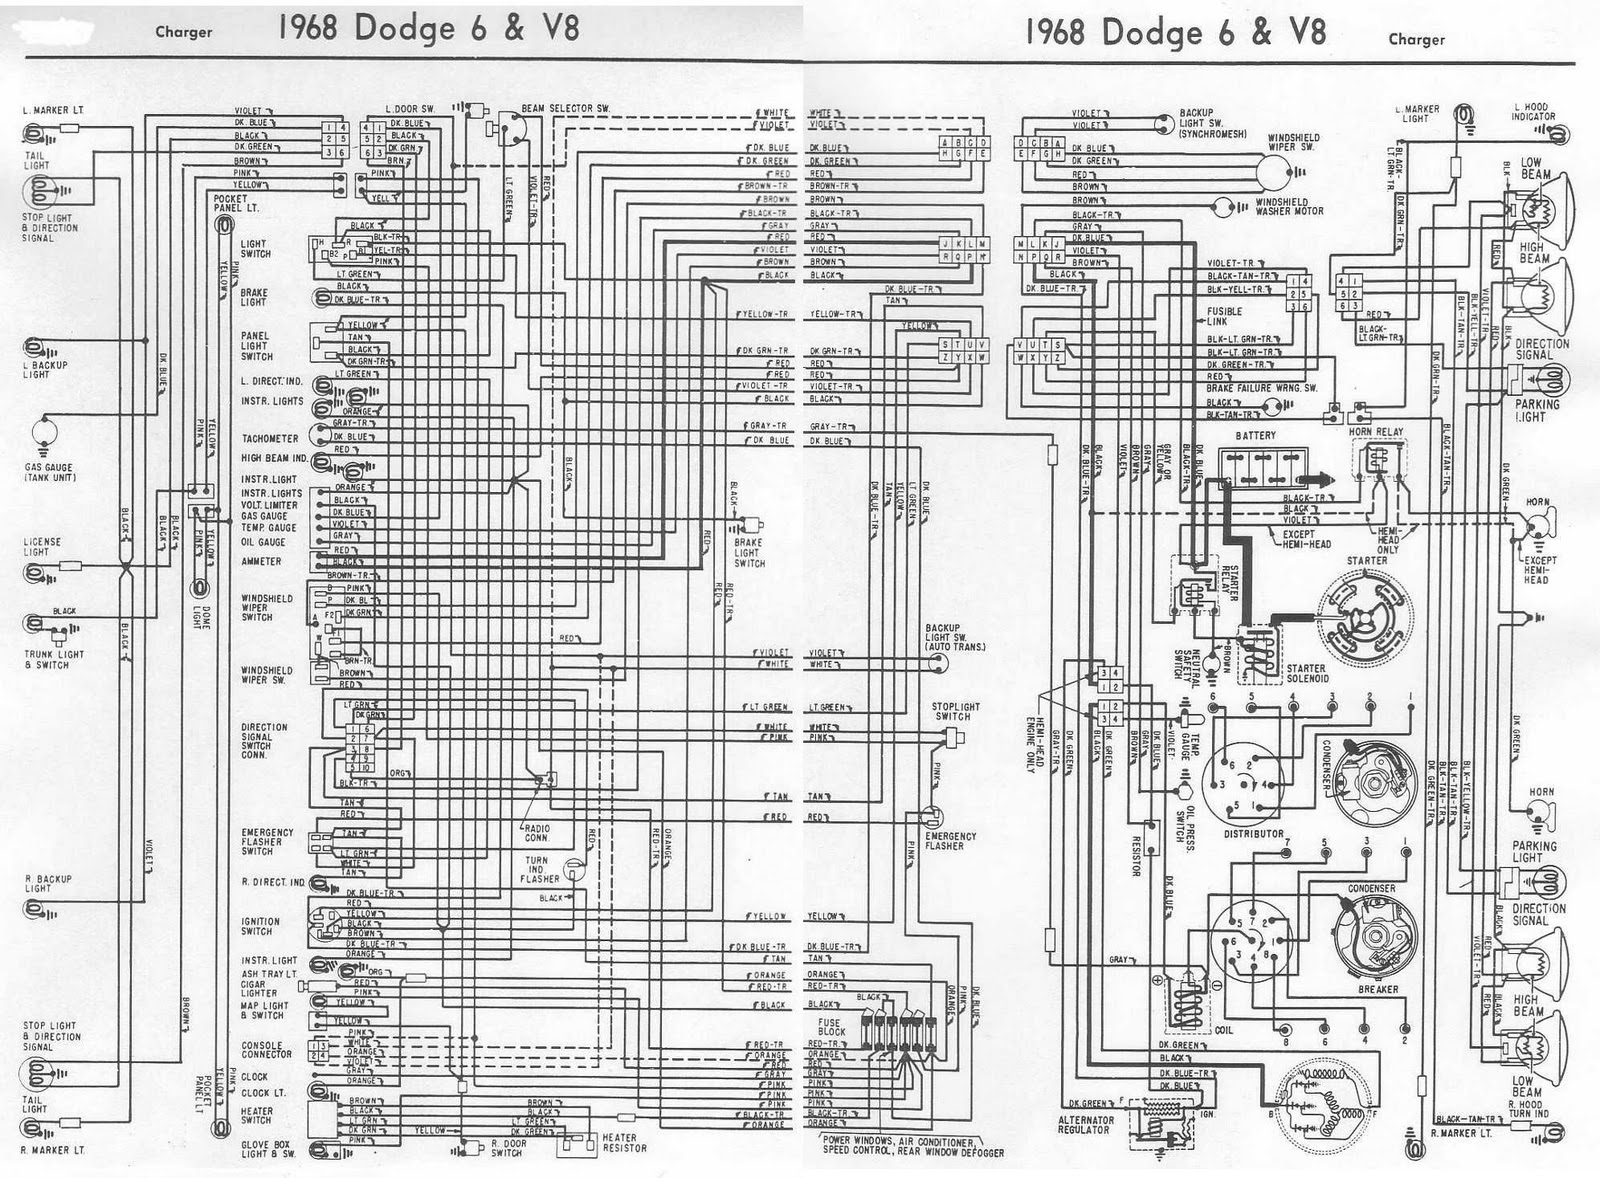 dodge charger 1968 6 and v8 complete electrical wiring diagram all rh diagramonwiring blogspot com dodge wiring diagrams free dodge wiring diagrams schematics